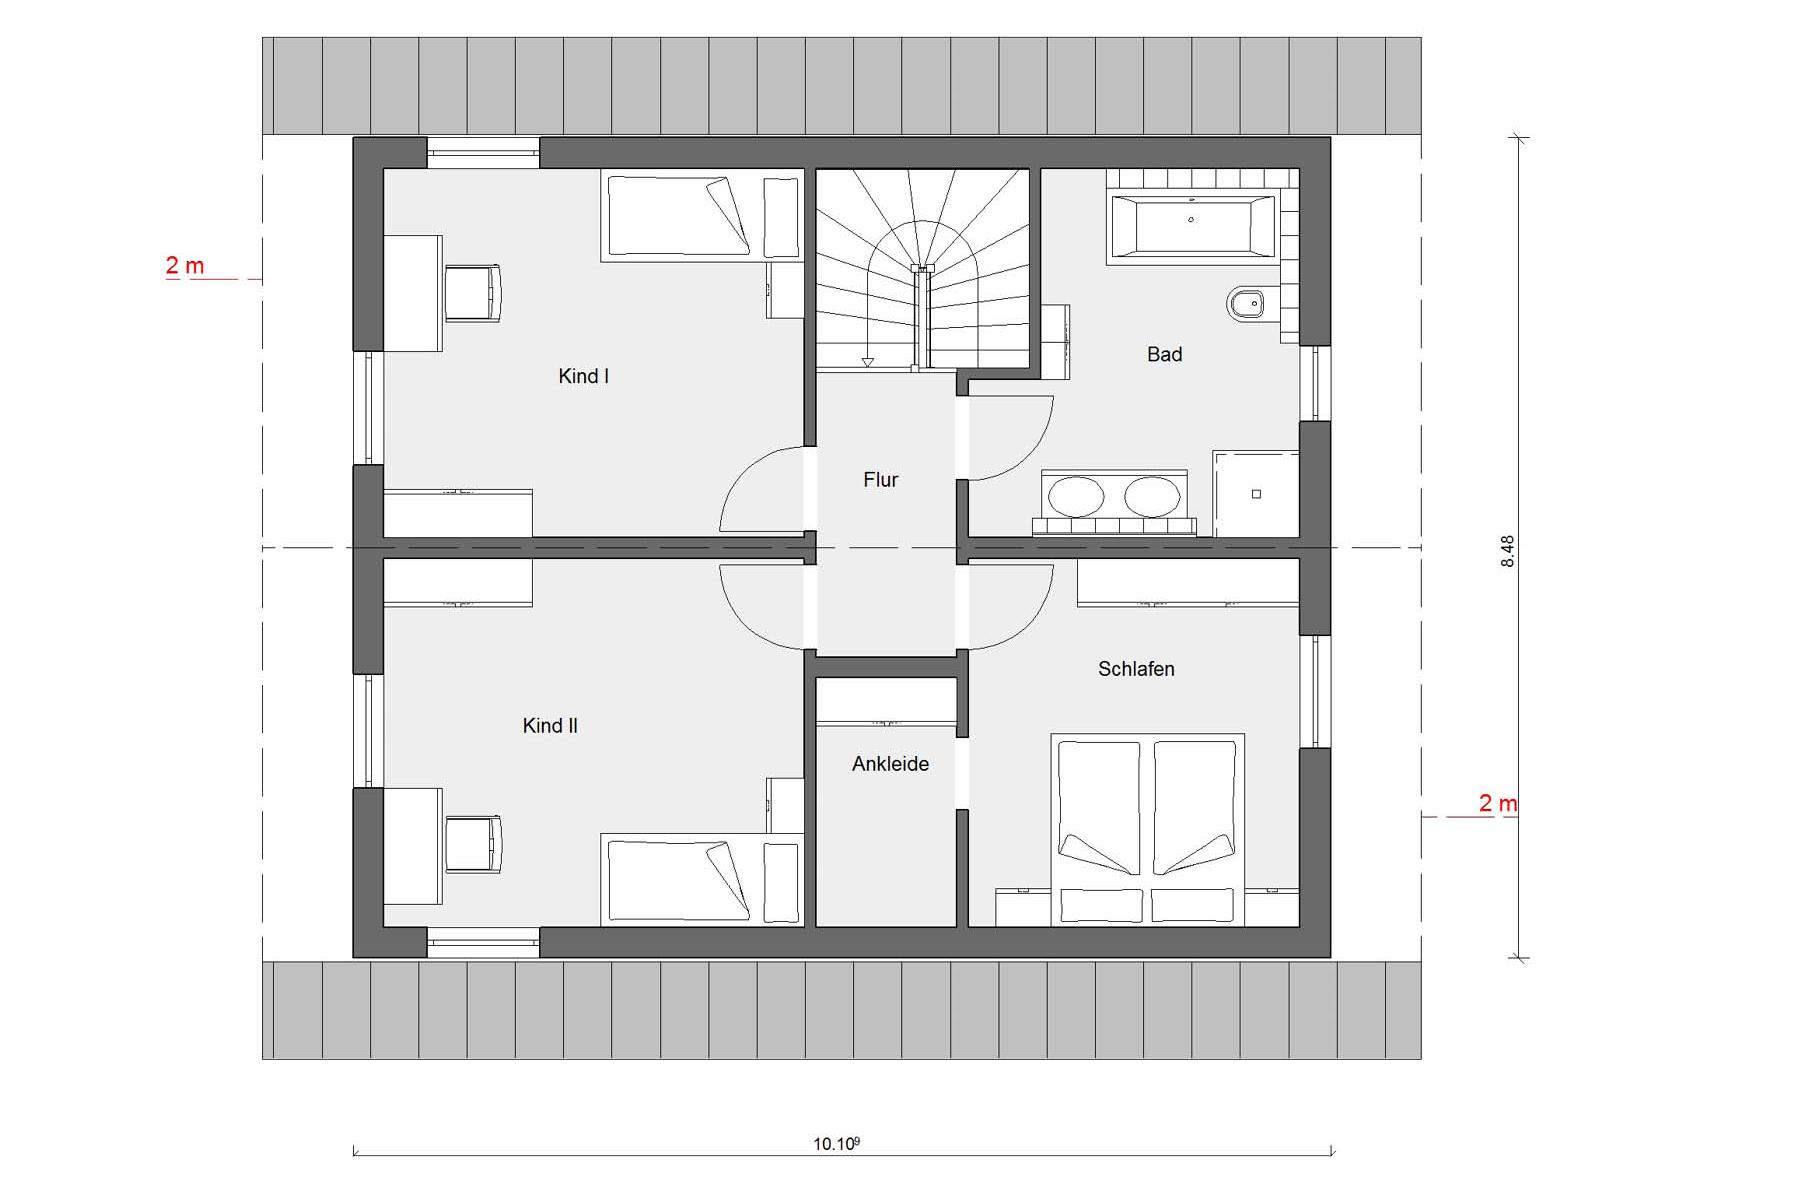 Attic floor plan E 15-140.4 House with office